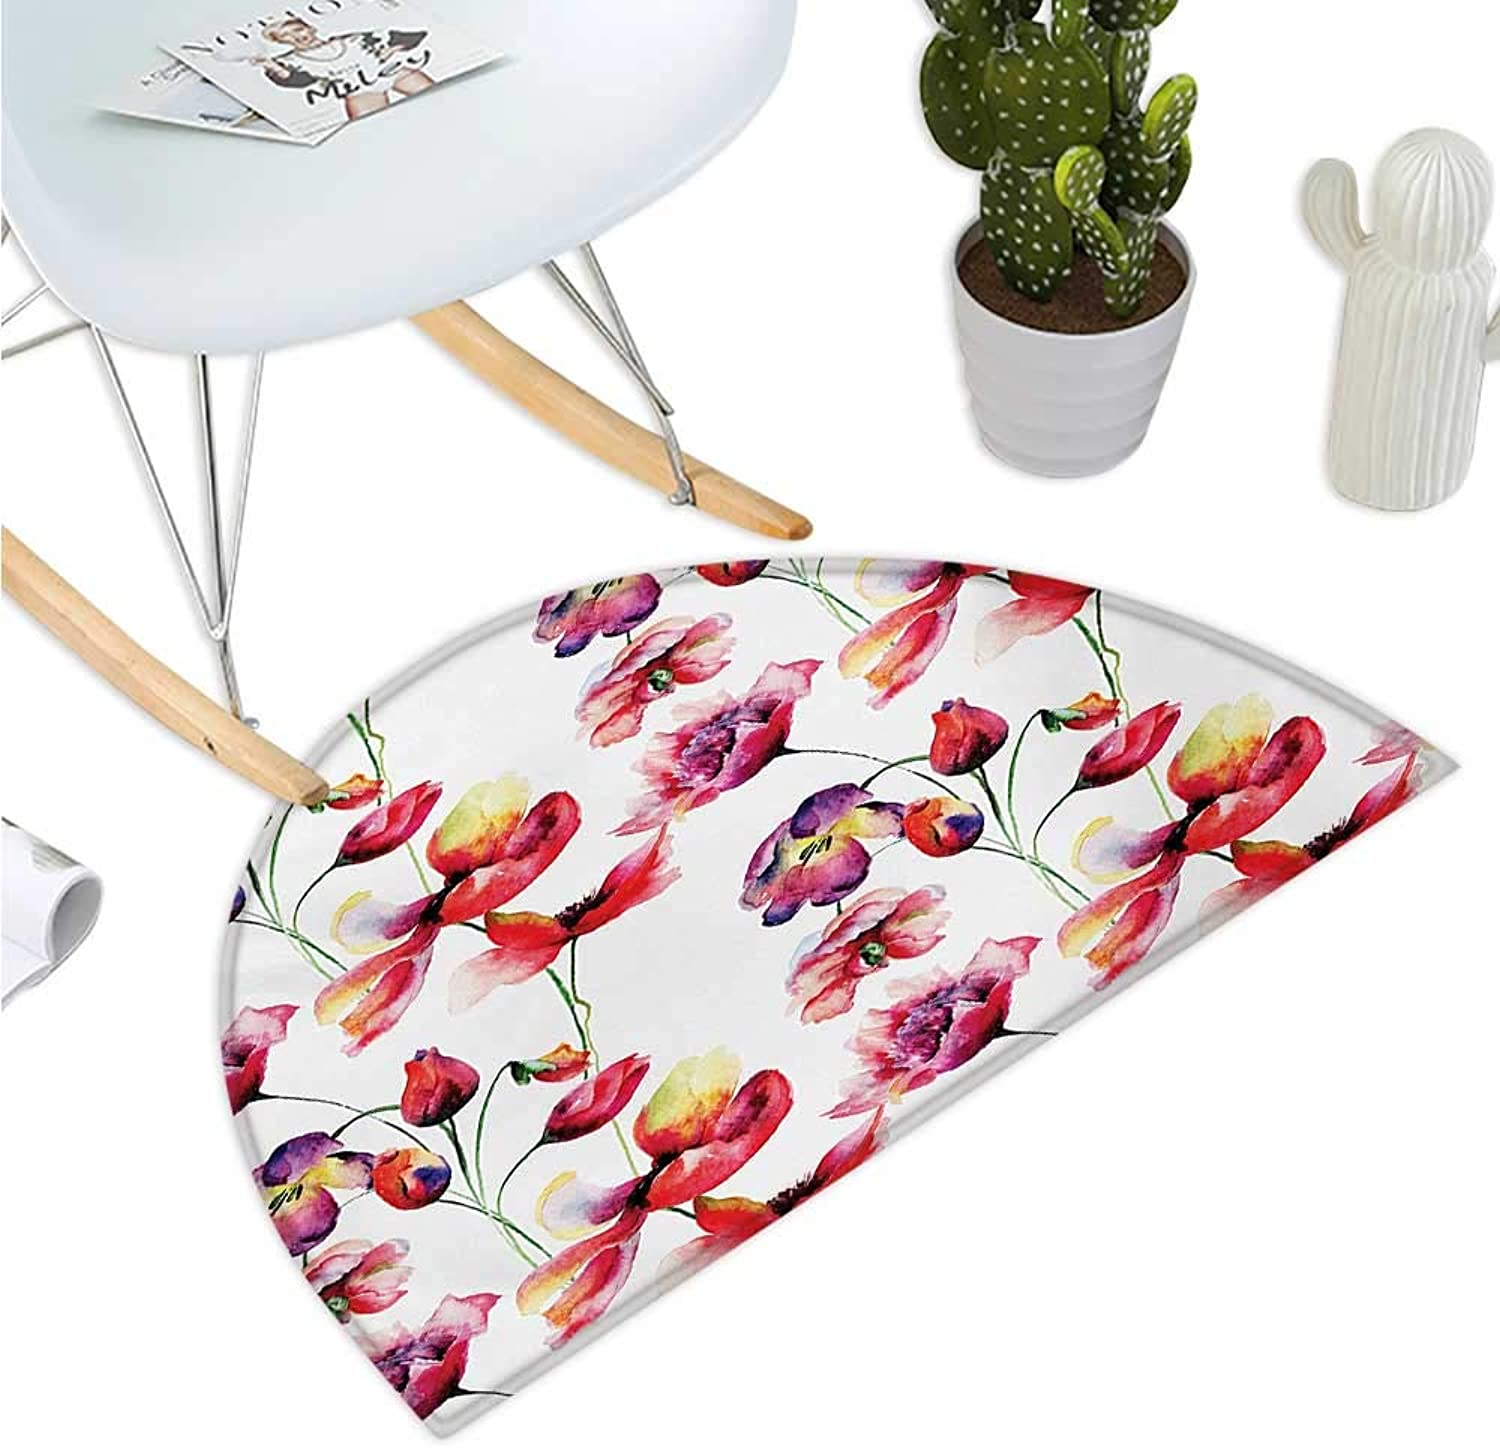 Tulip Semicircular Cushion Pastel colord Blooming Grungy Uneven Tulip and Poppy Flower Patterns Nature Theme Entry Door Mat H 35.4  xD 53.1  Red White